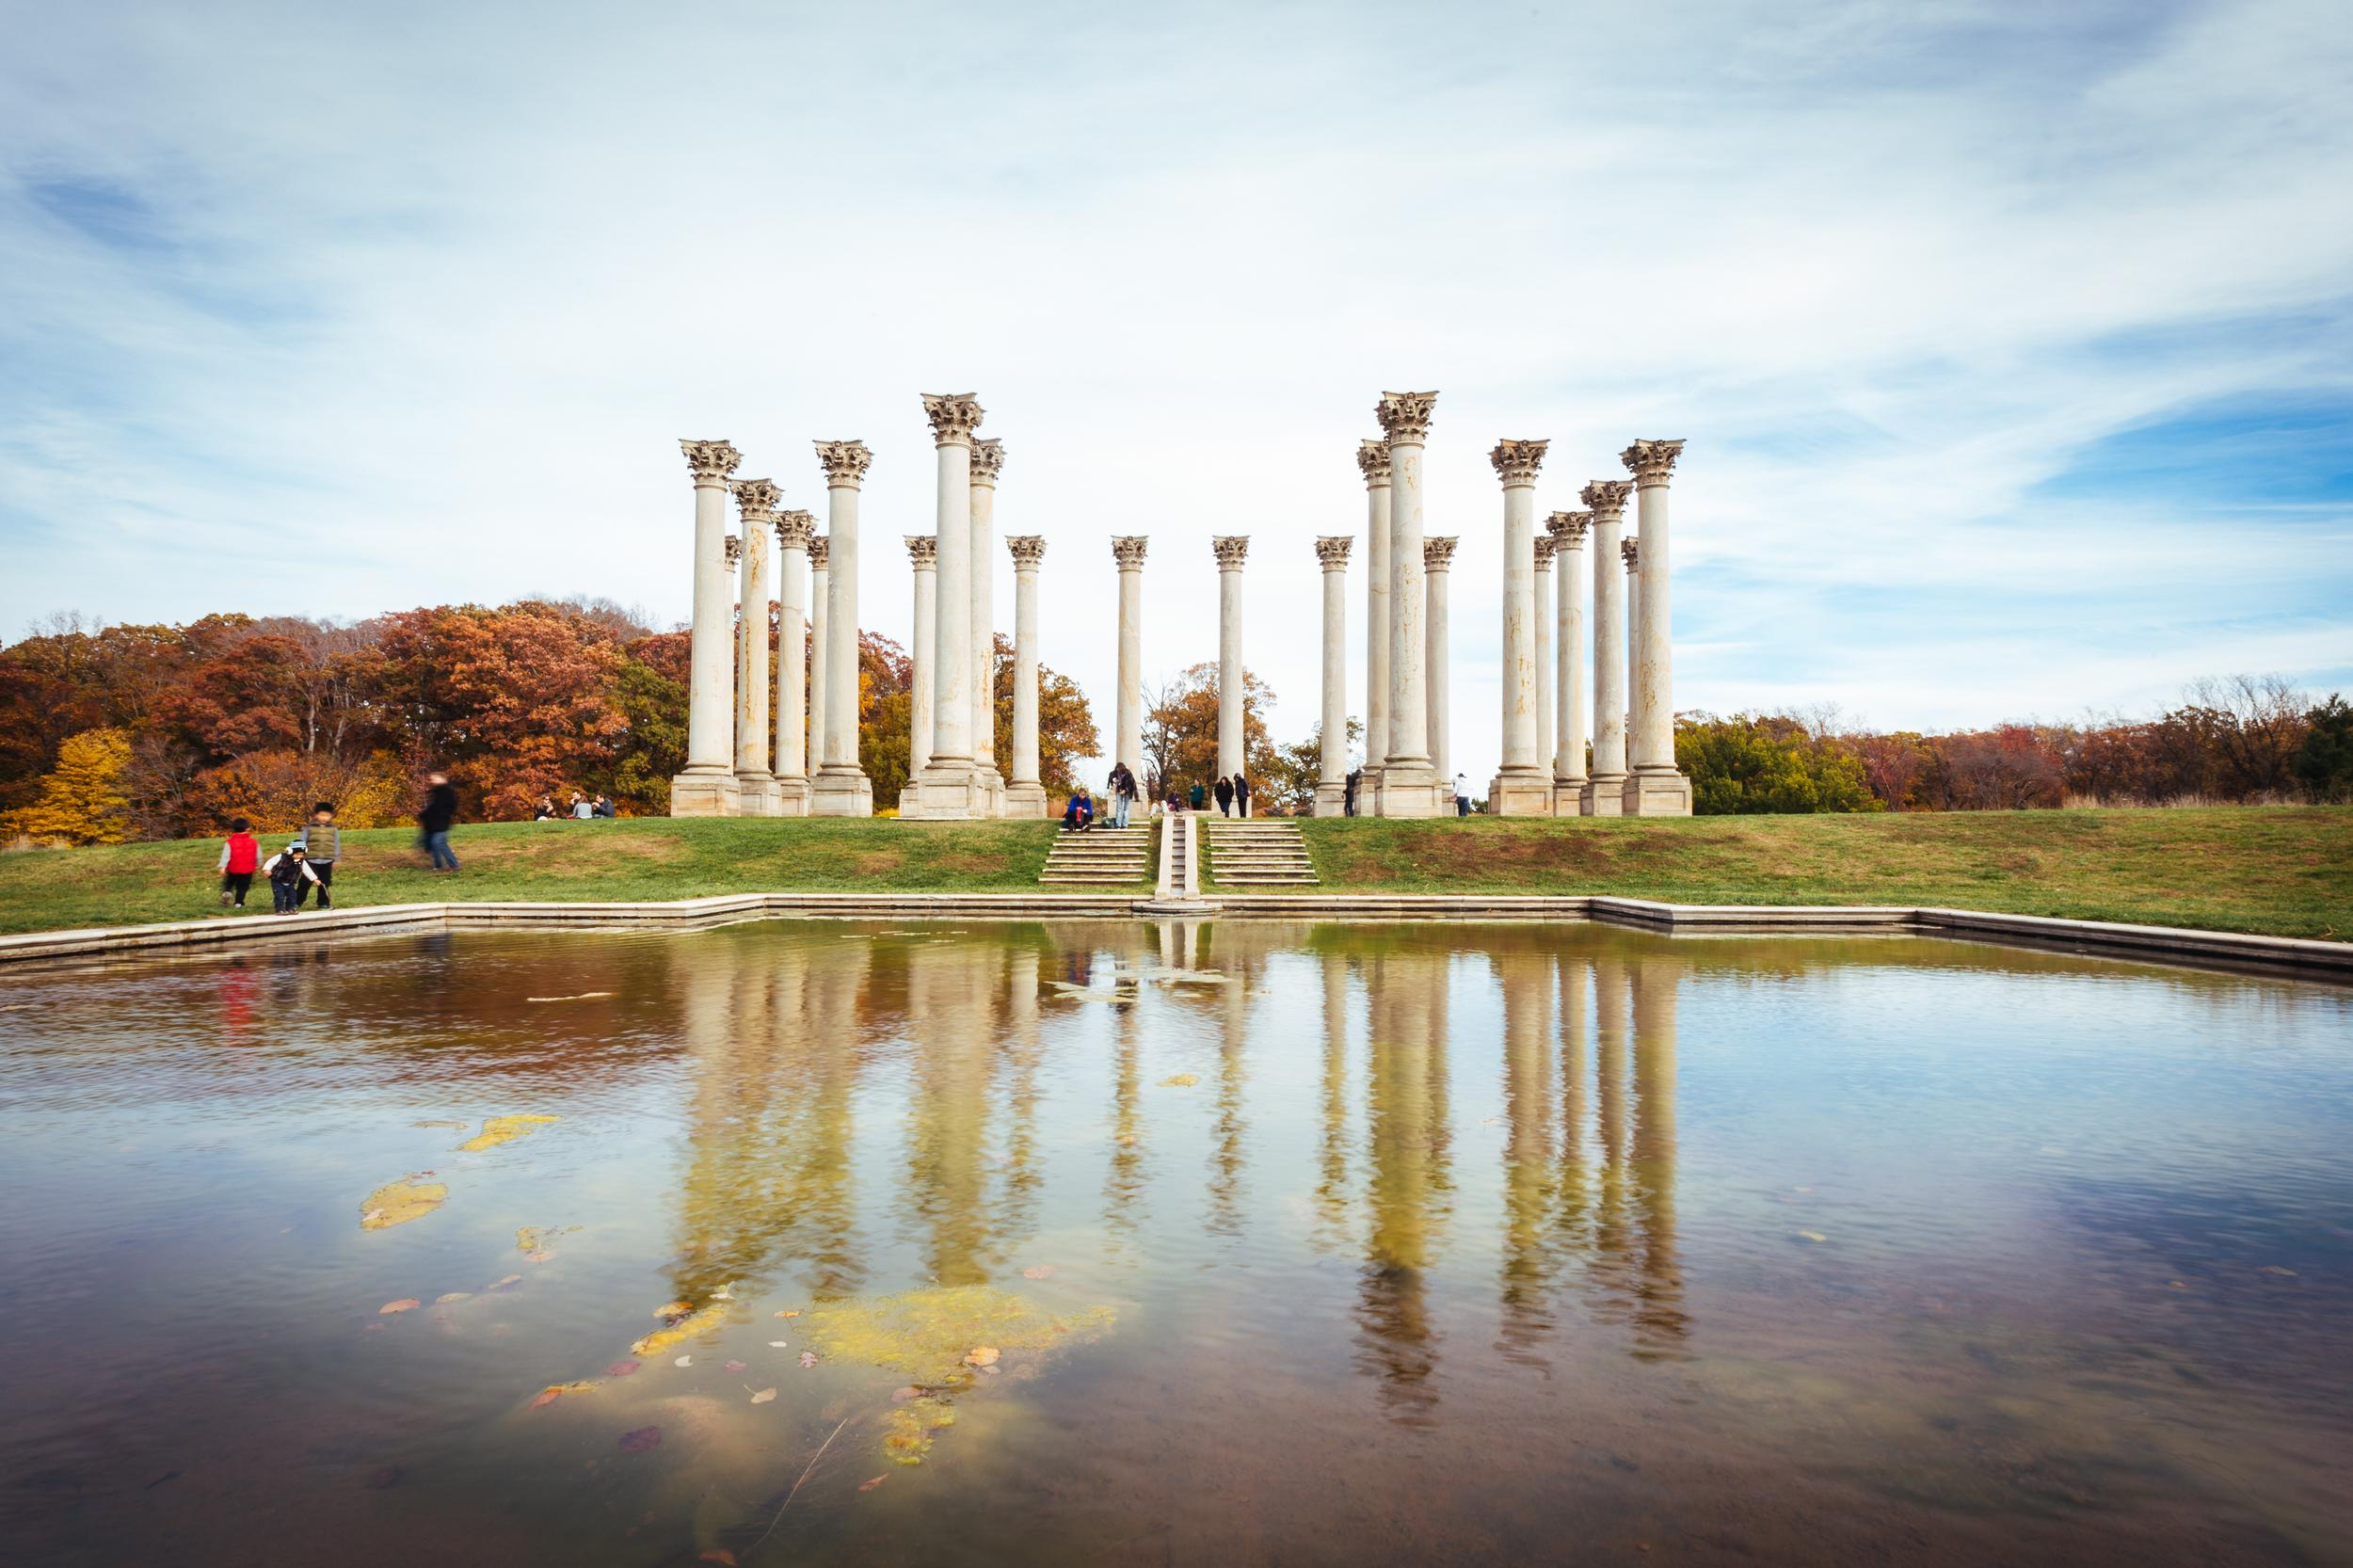 Fall Day at the National Arboretum in Washington DC